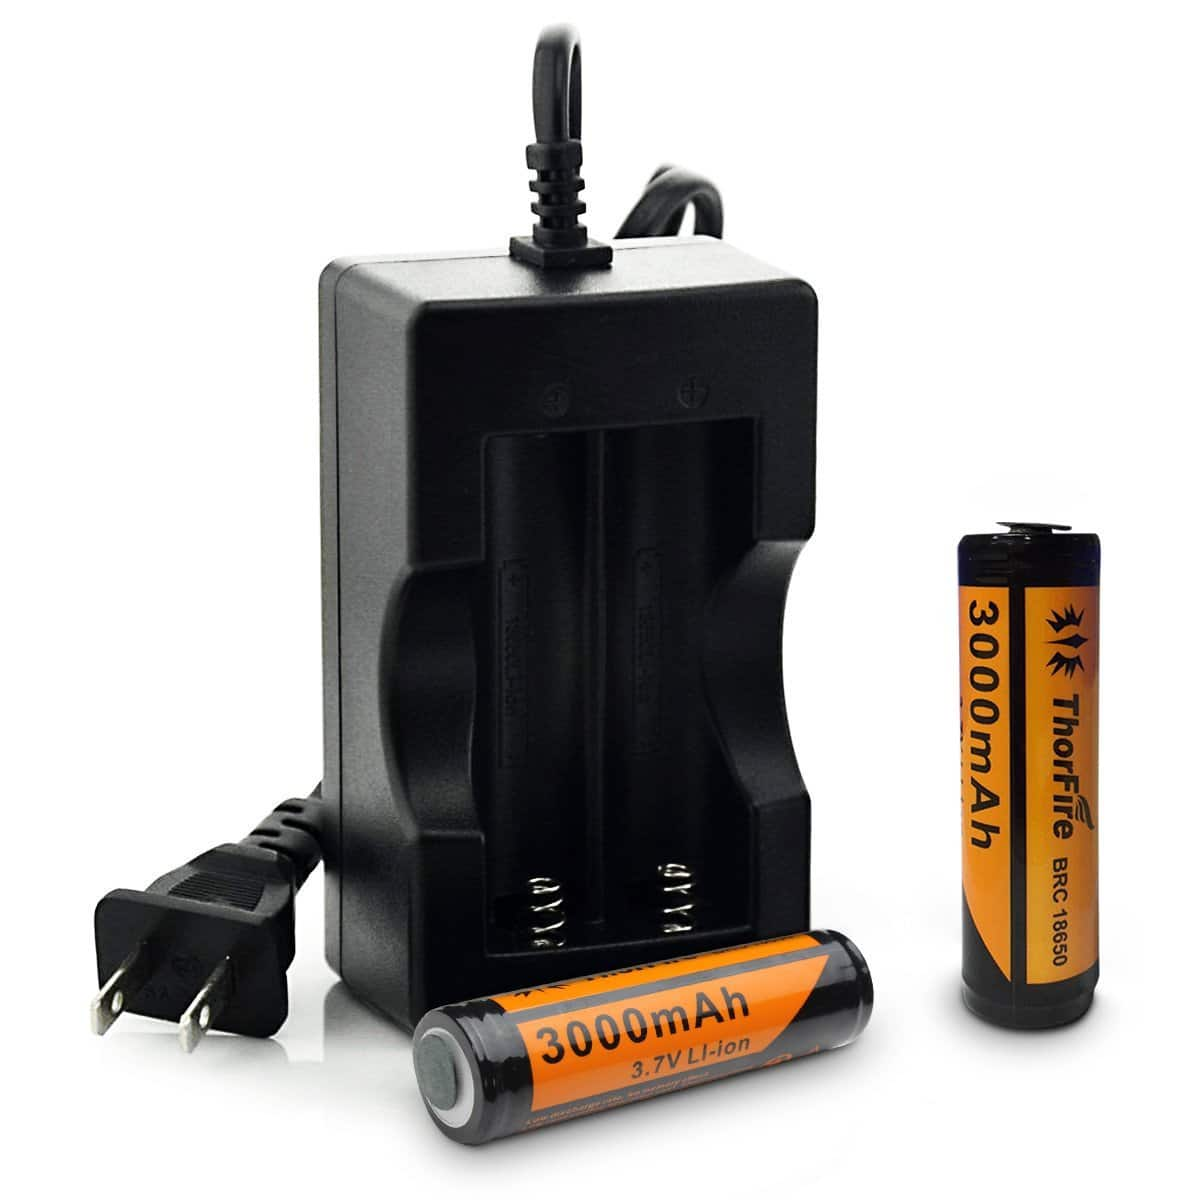 2-Pack ThorFire 18650 3.7V Li-ion Batteries & Charger - $9.99 and Free Shipping via Amazon Prime